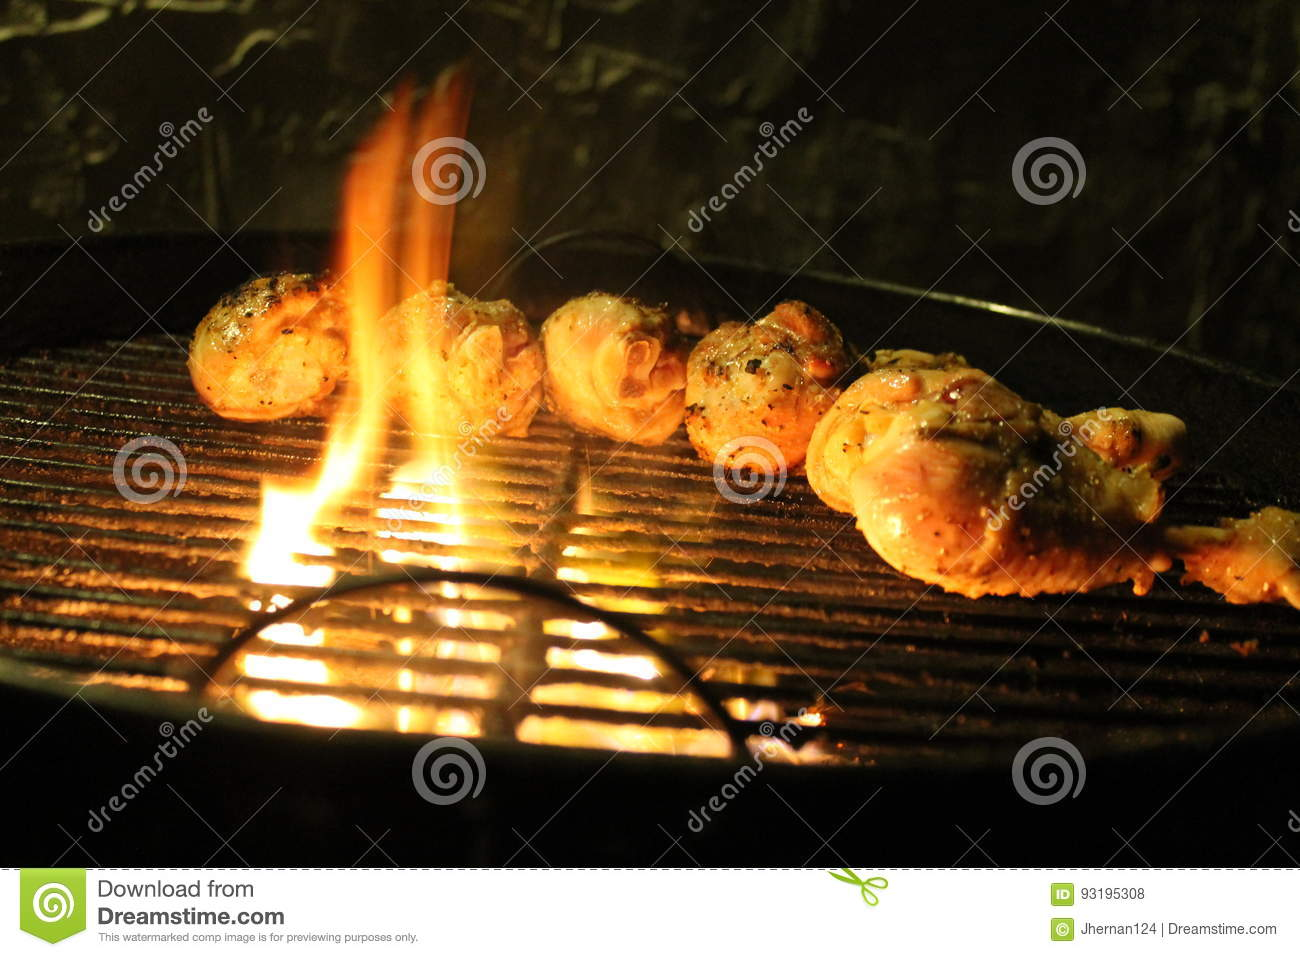 Chicken Legs On The Grill Stock Photo - Image: 93195308